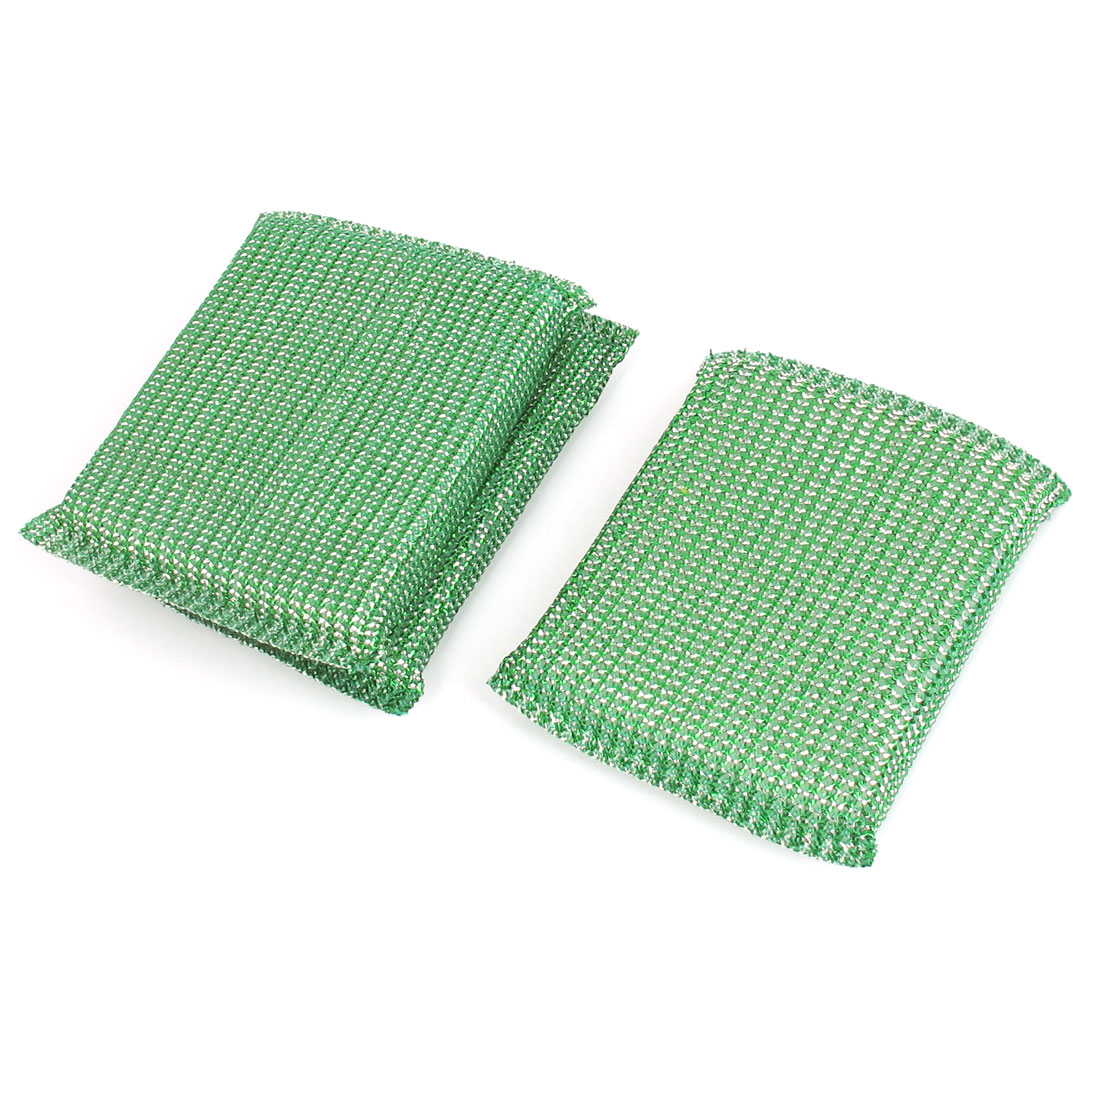 Kitchenware Dish Bowl Pot Cup Cleaner Scrub Pads Cleaning Tool Green 3pcs